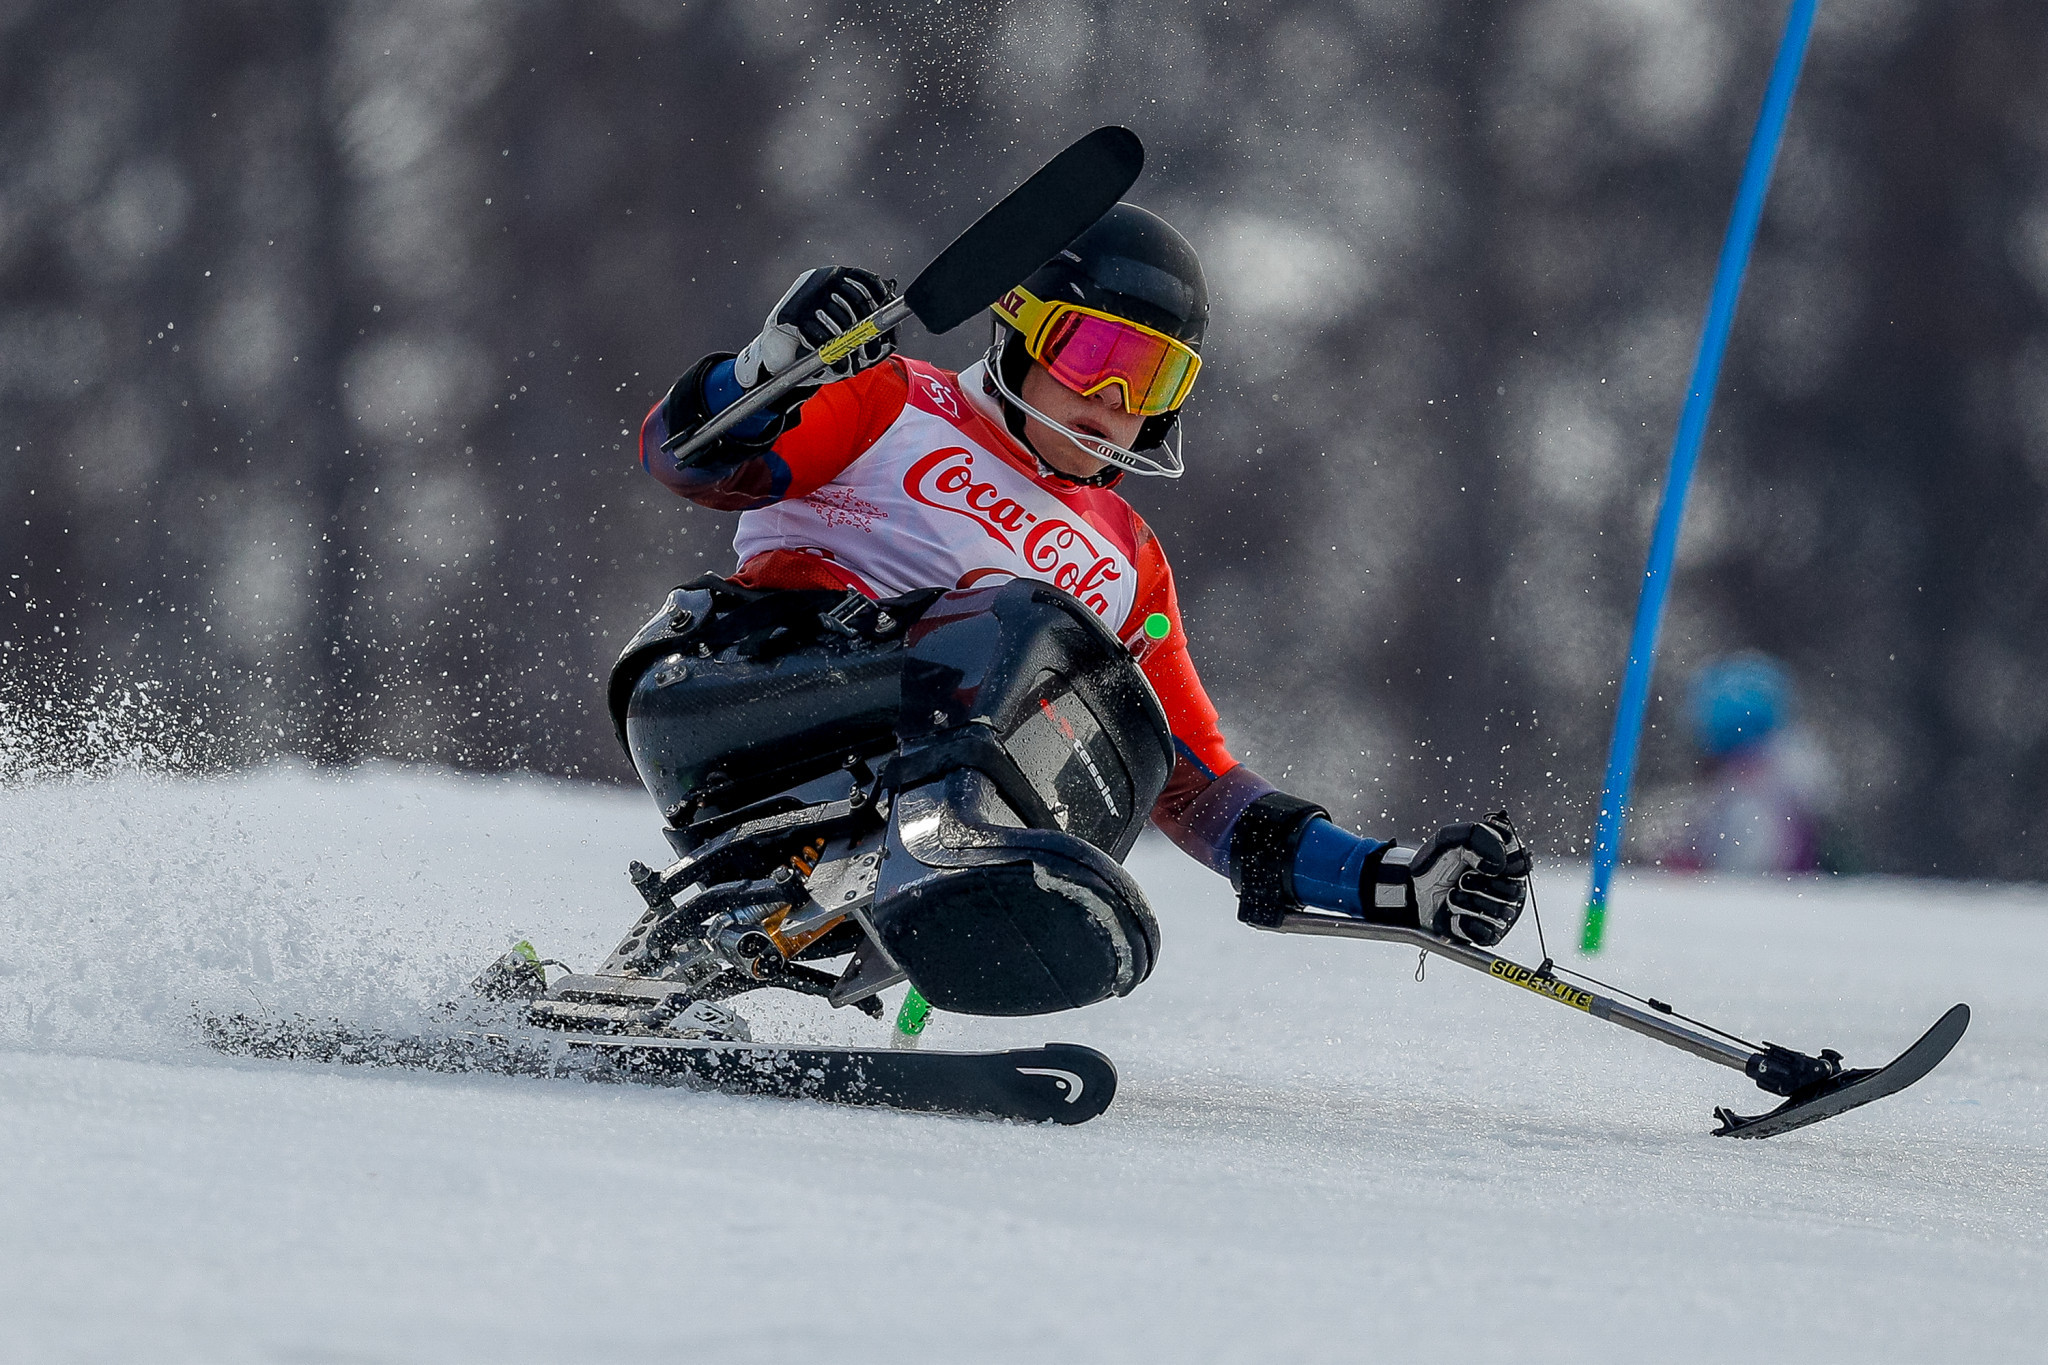 La Molina to host extended World Para Alpine Skiing World Cup after Espot cancellation